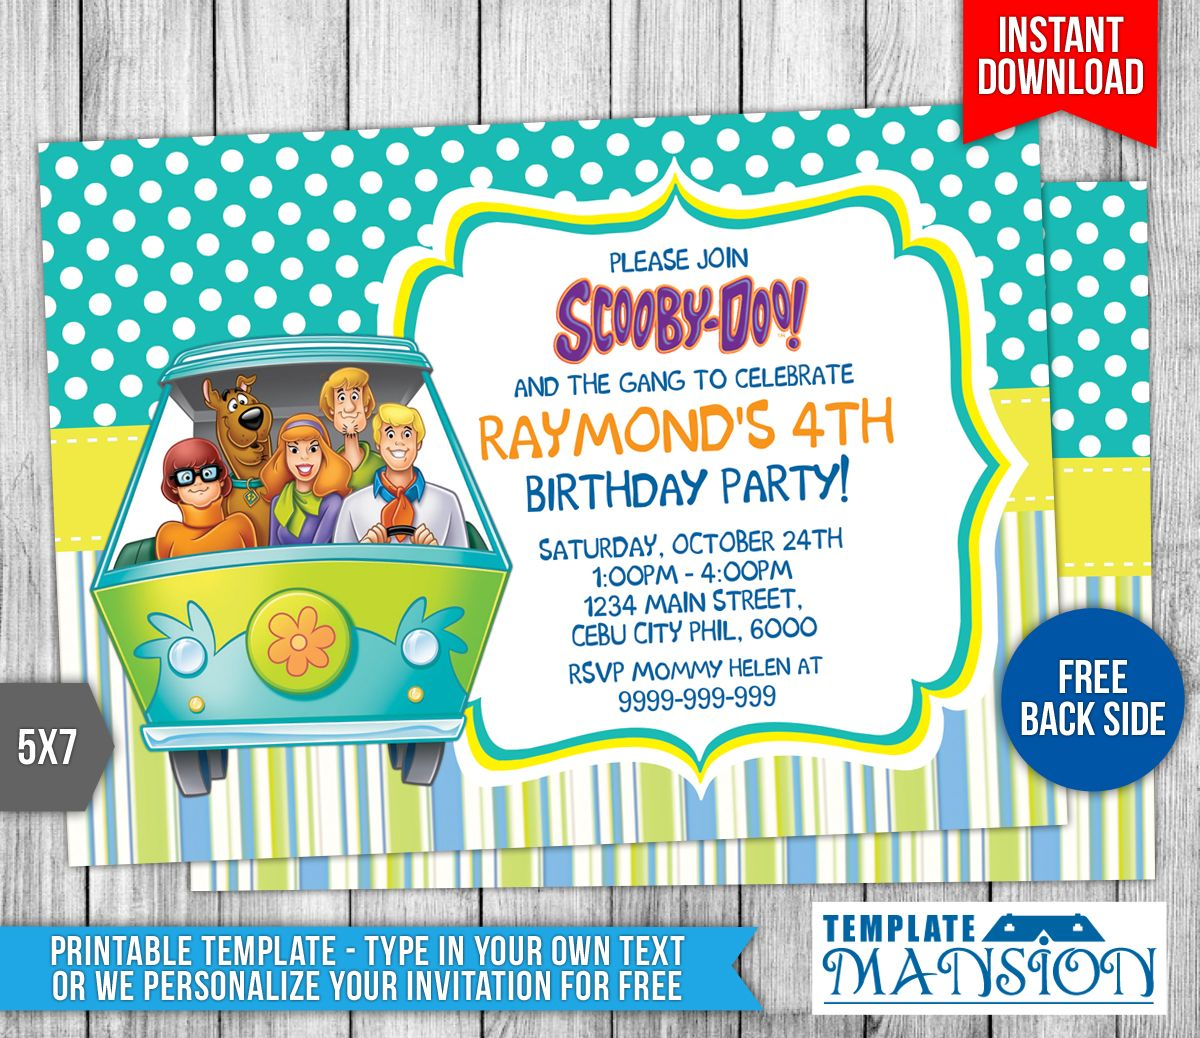 Free Scooby Doo Birthday Invitation